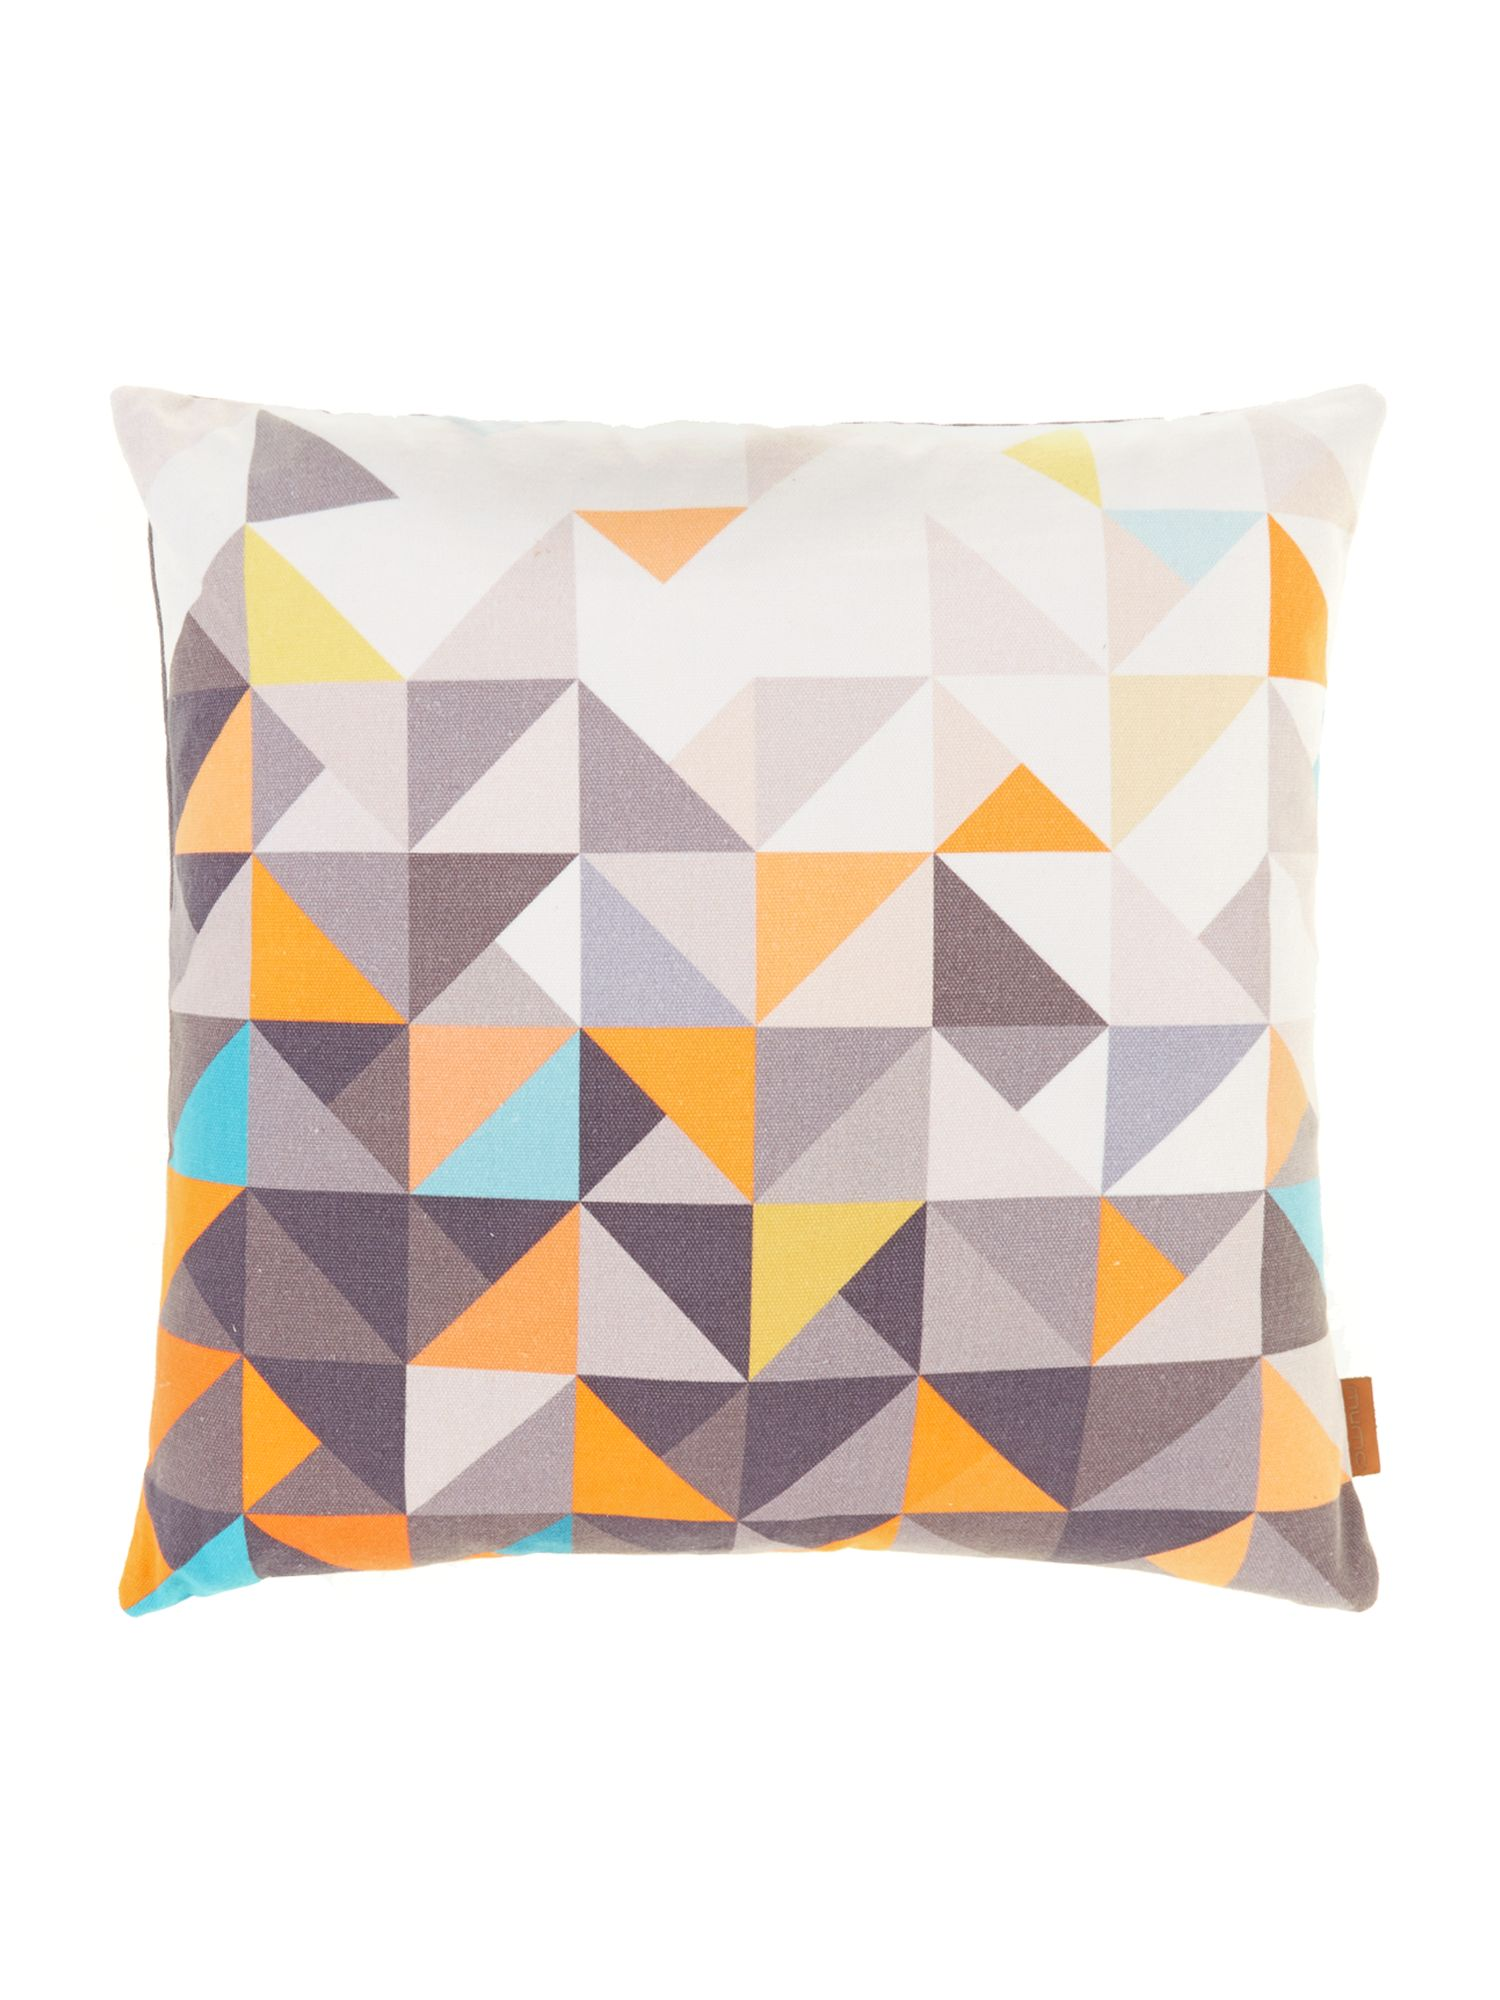 Paulista multi geometric, velvet backed cushion